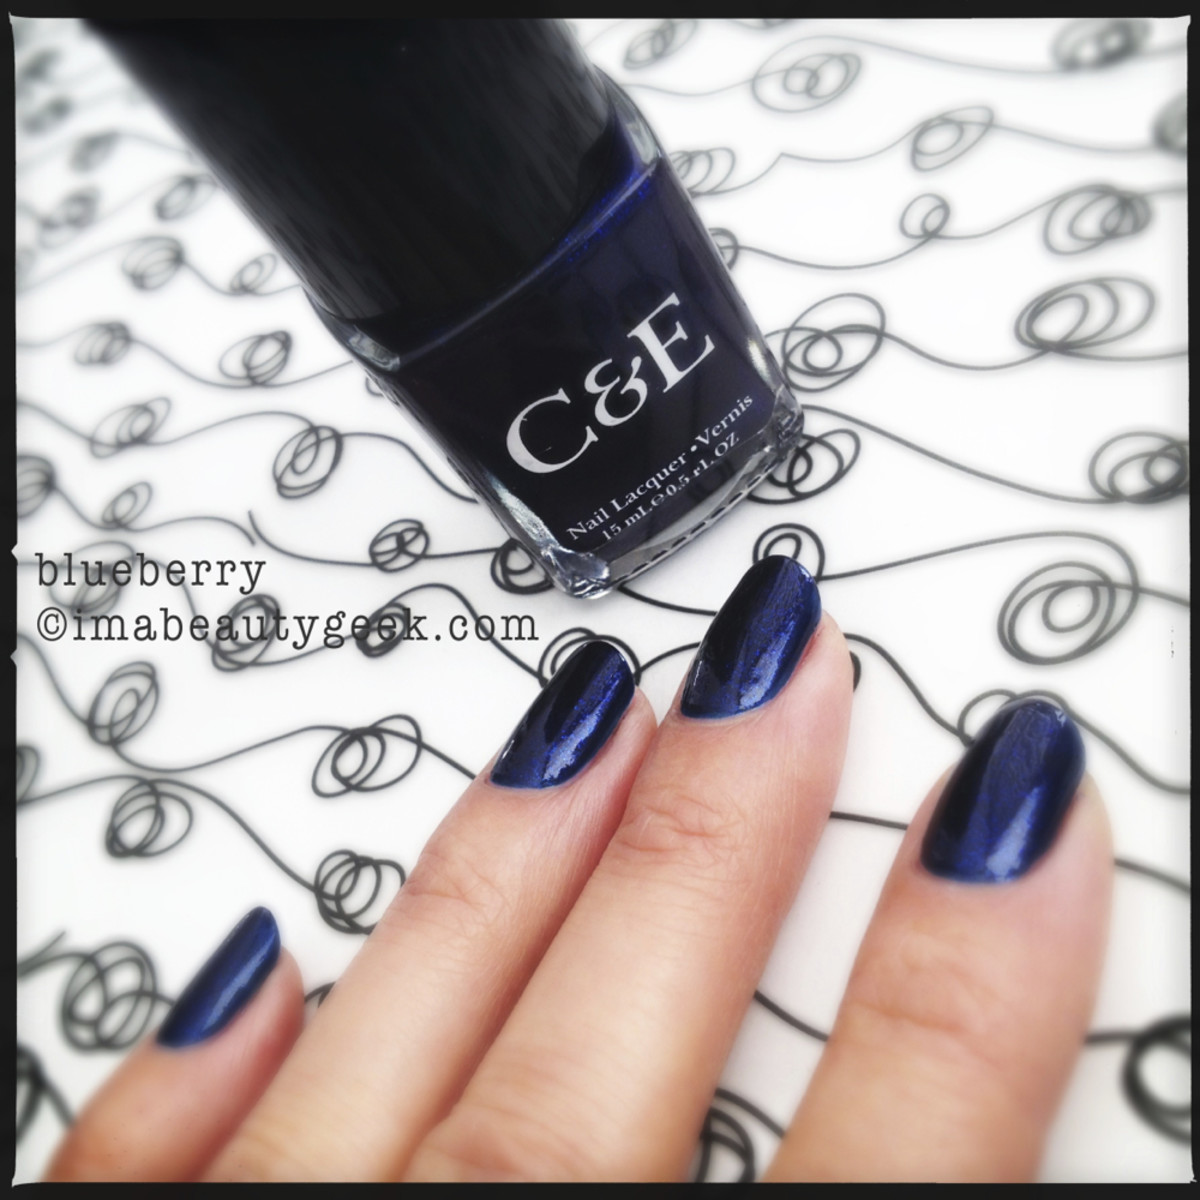 Crabtree & Evelyn Polish Blueberry